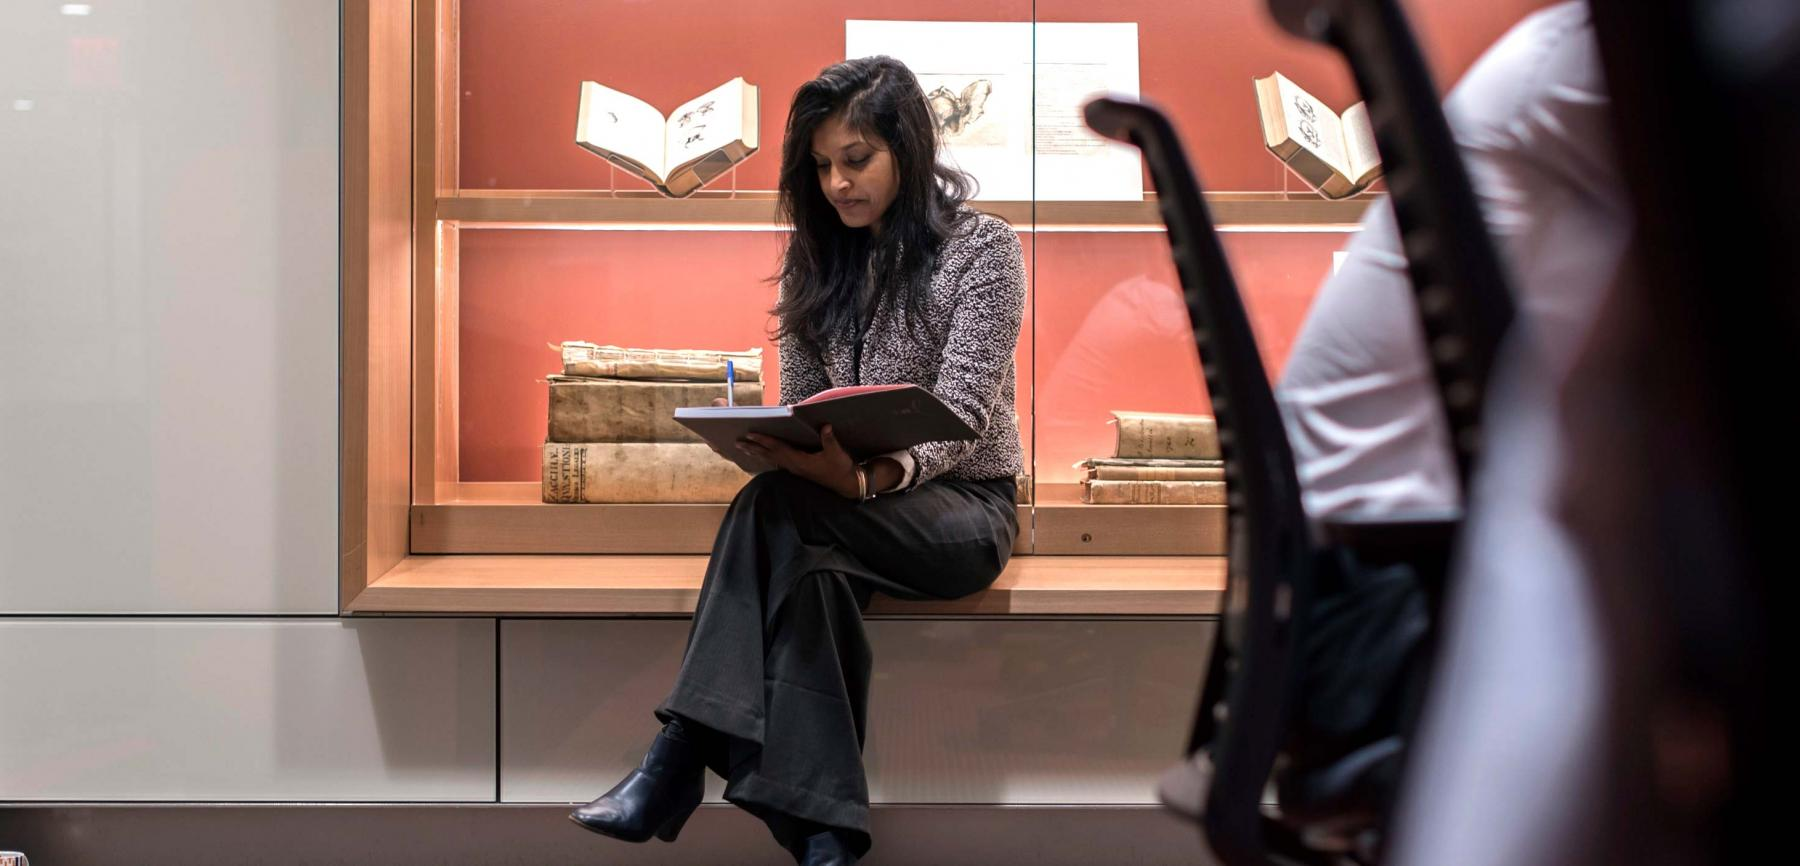 Postdoctoral Fellow Bhama Ramkhelawon Reads a Book